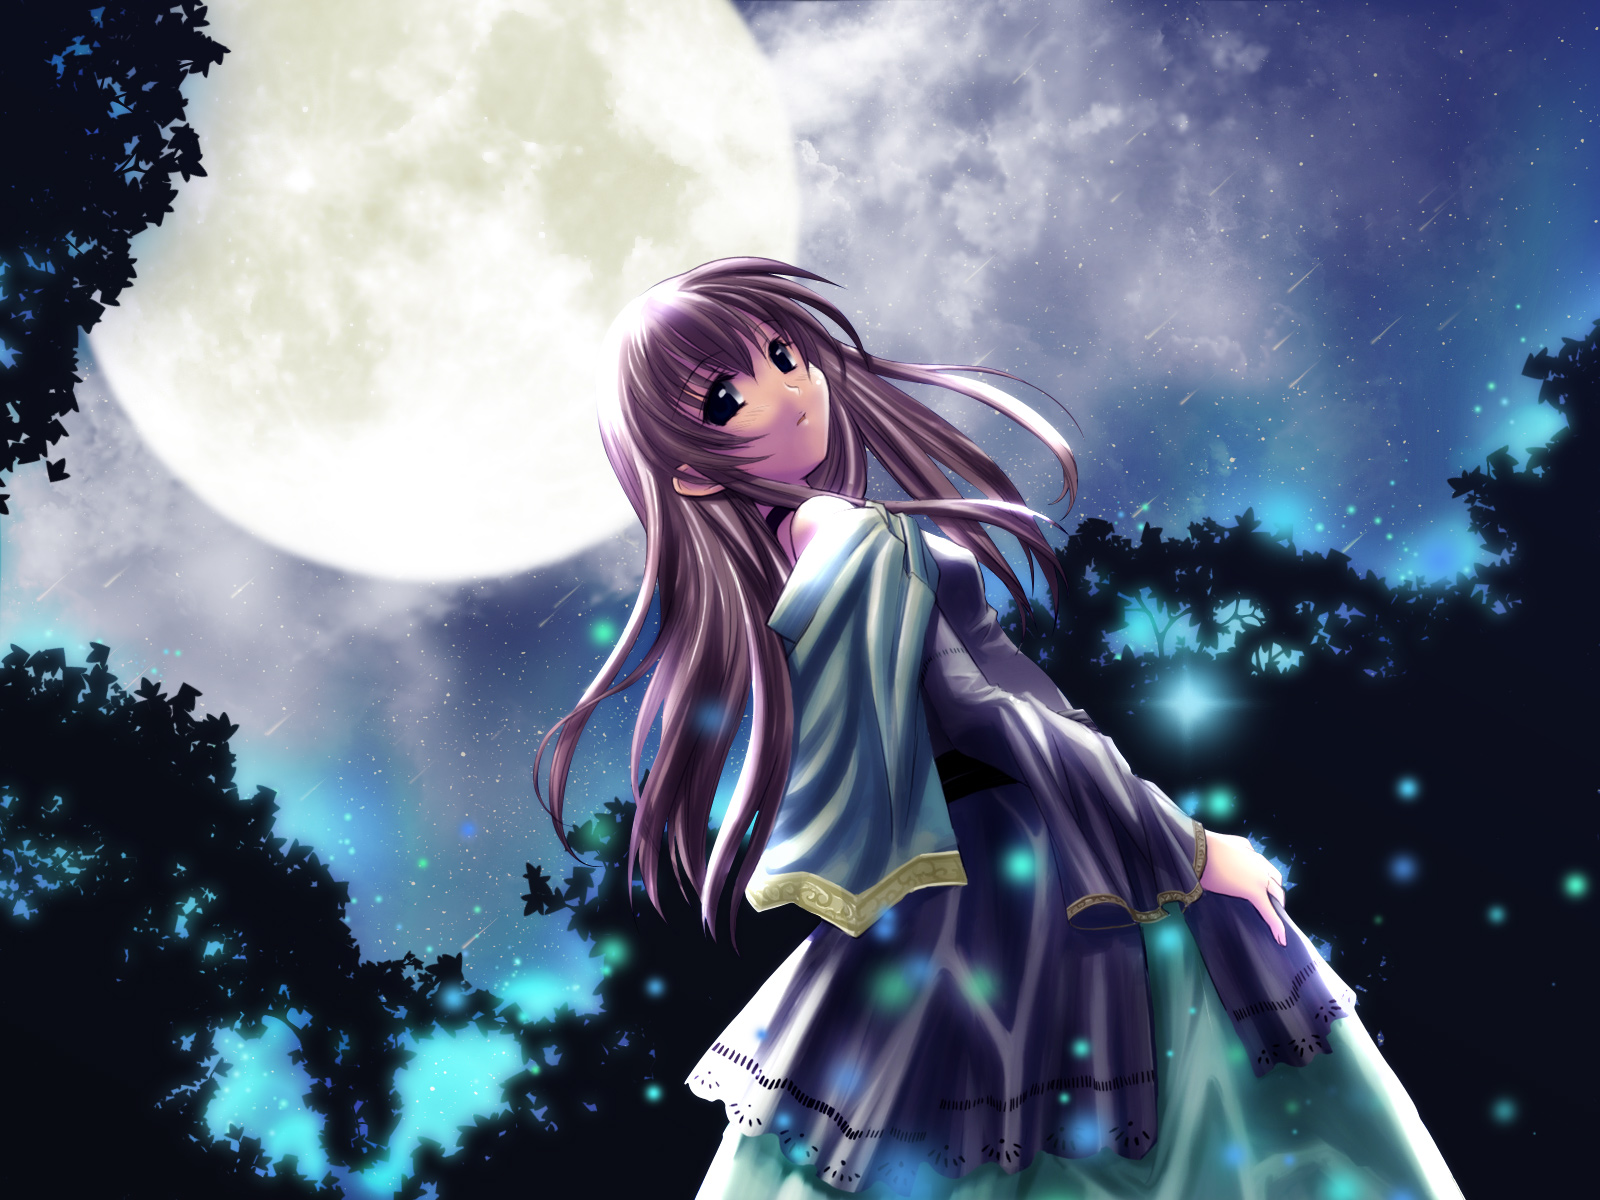 Anime 4 | HD Wallpapers & Quality Desktop Backgrounds for free